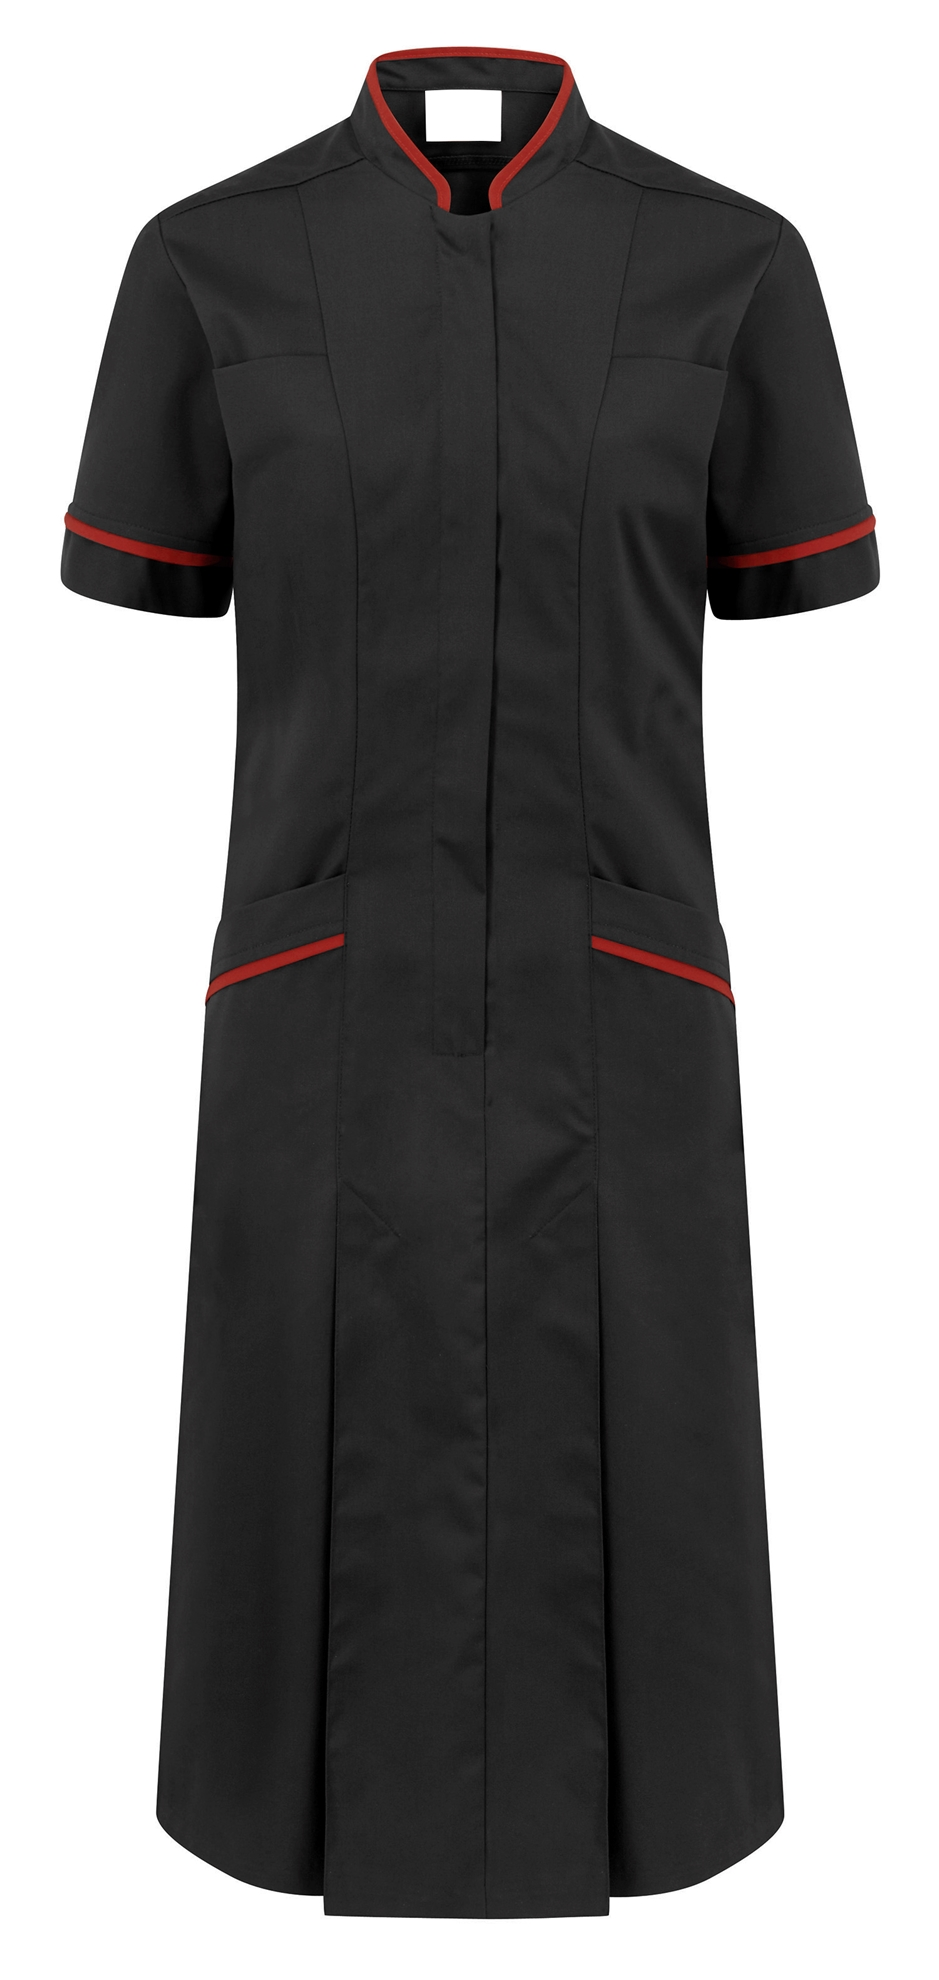 Picture of Professional Dress - Black/Red